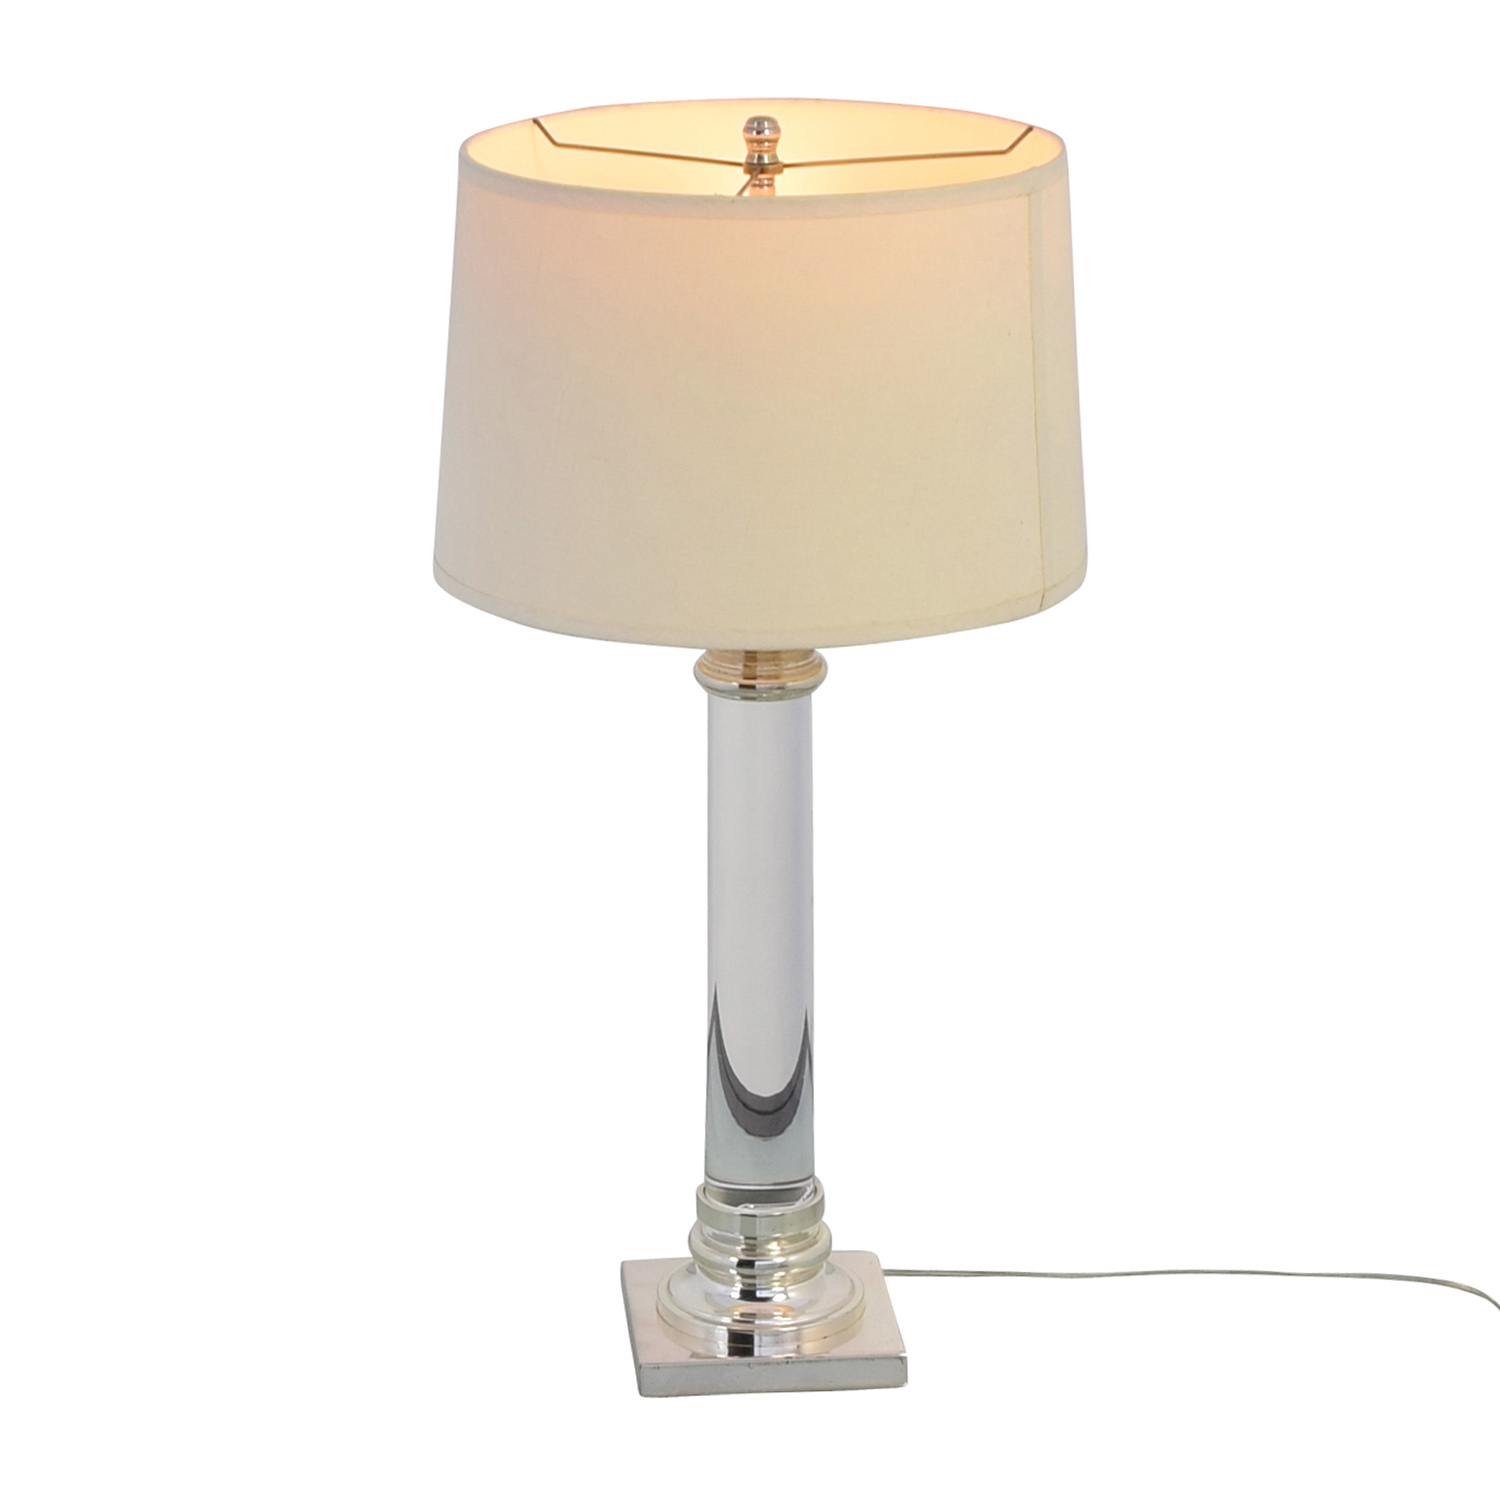 Lamps Online 86 Off Restoration Hardware Restoration Hardware Glass Bedside Table Lamps Decor